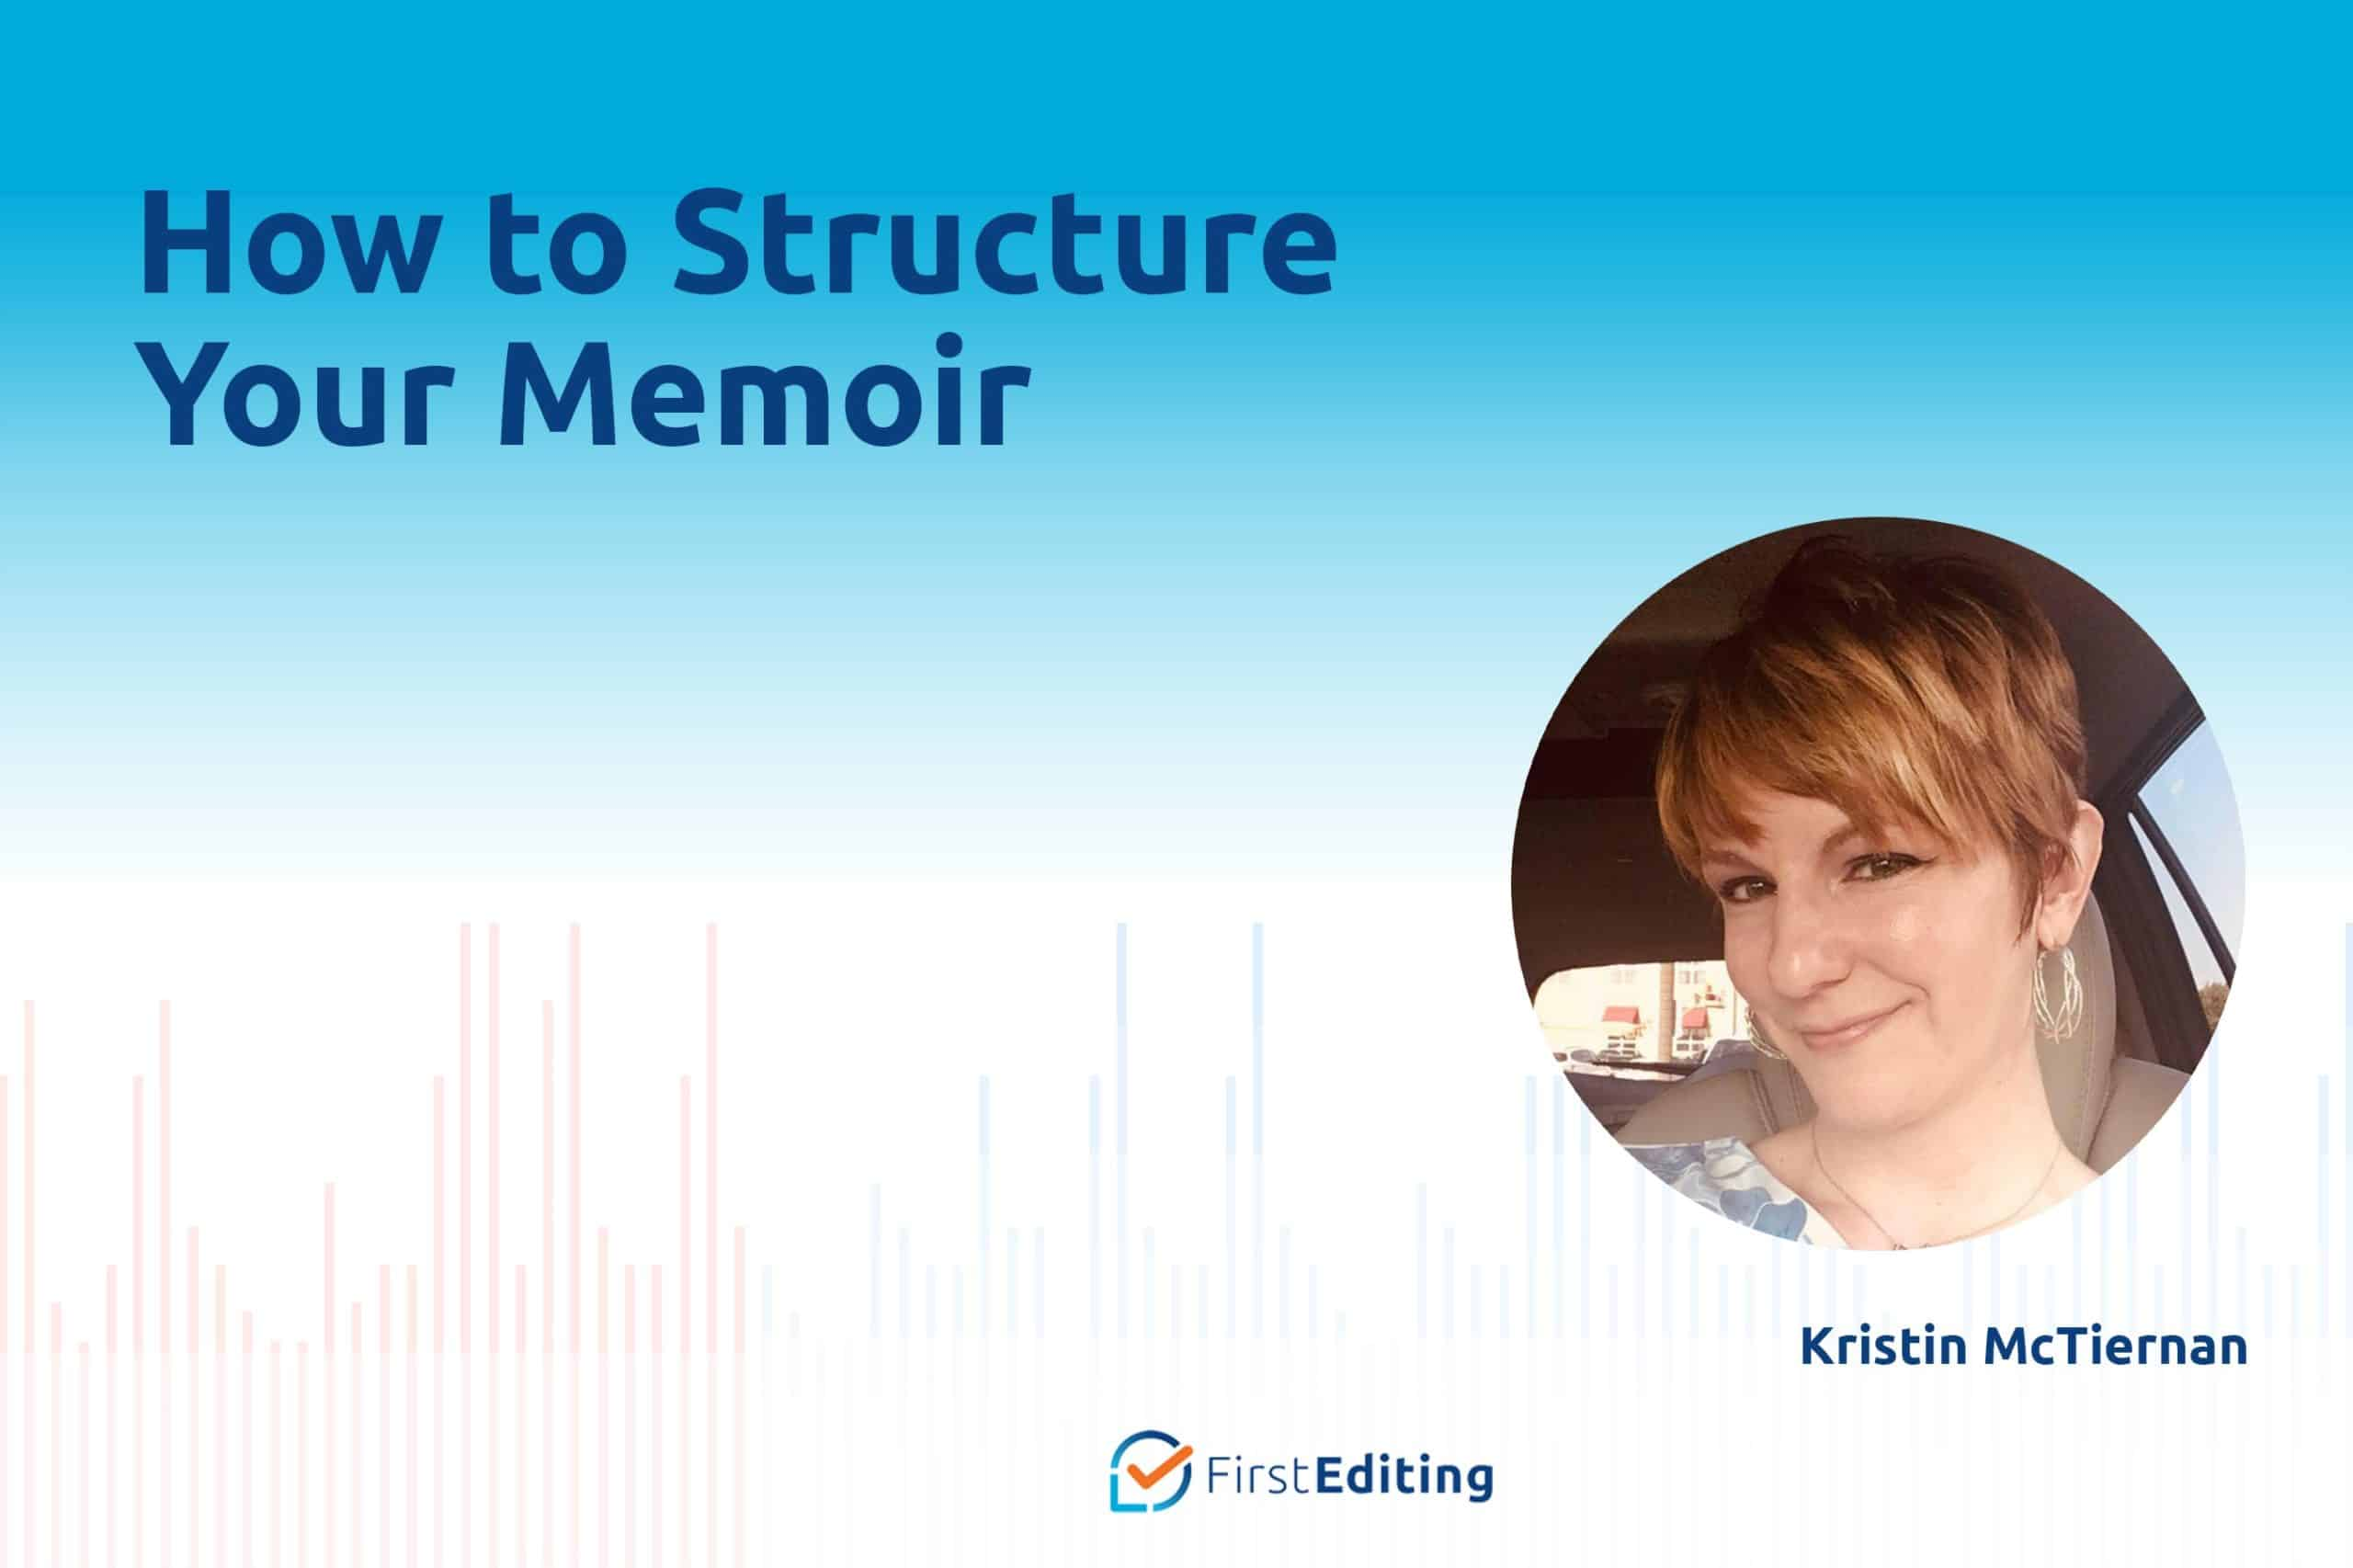 How to Structure Your Memoir with Kristin McTiernan